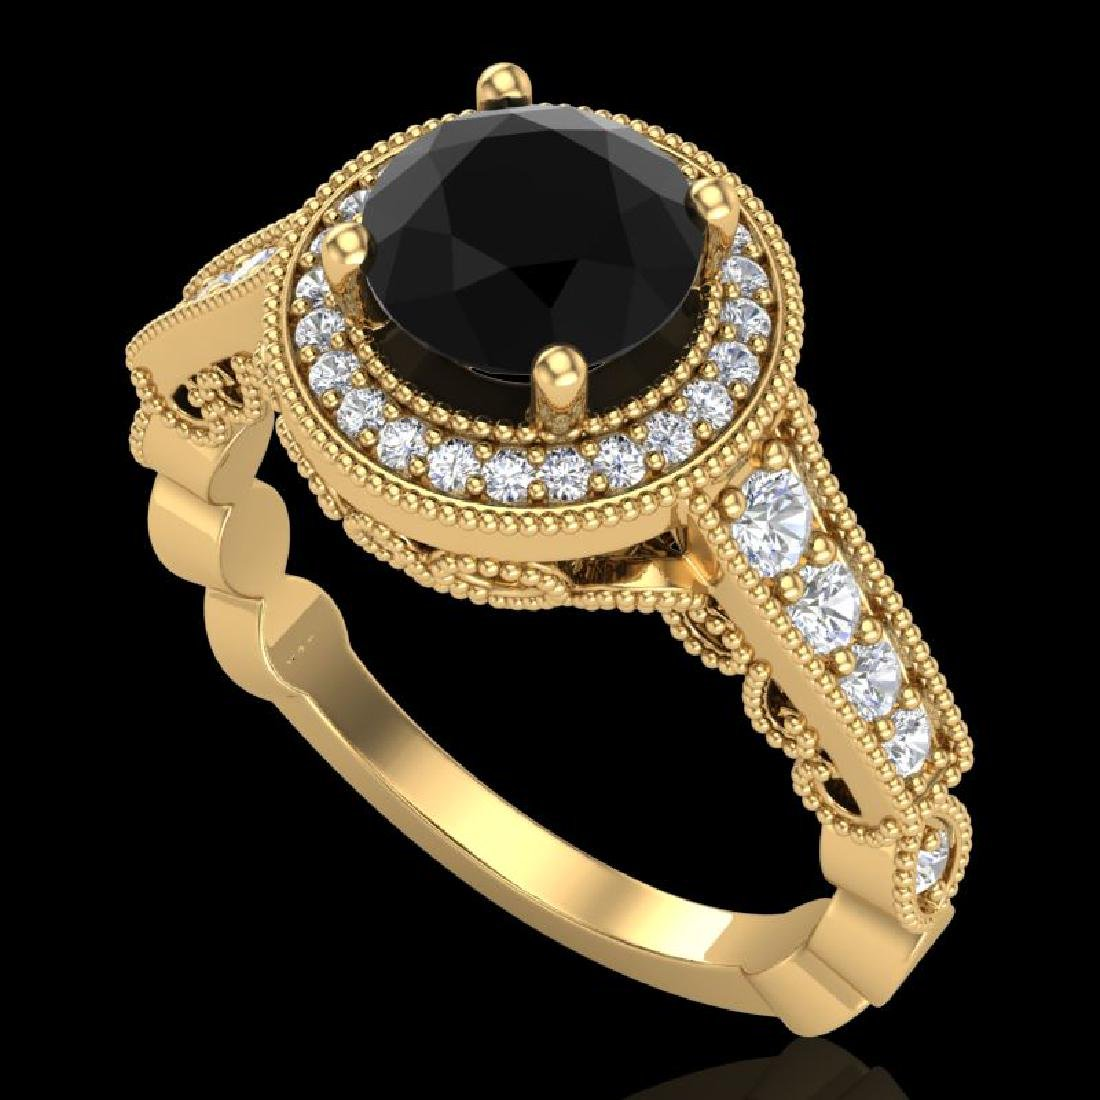 1.91 CTW Fancy Black Diamond Solitaire Engagement Art